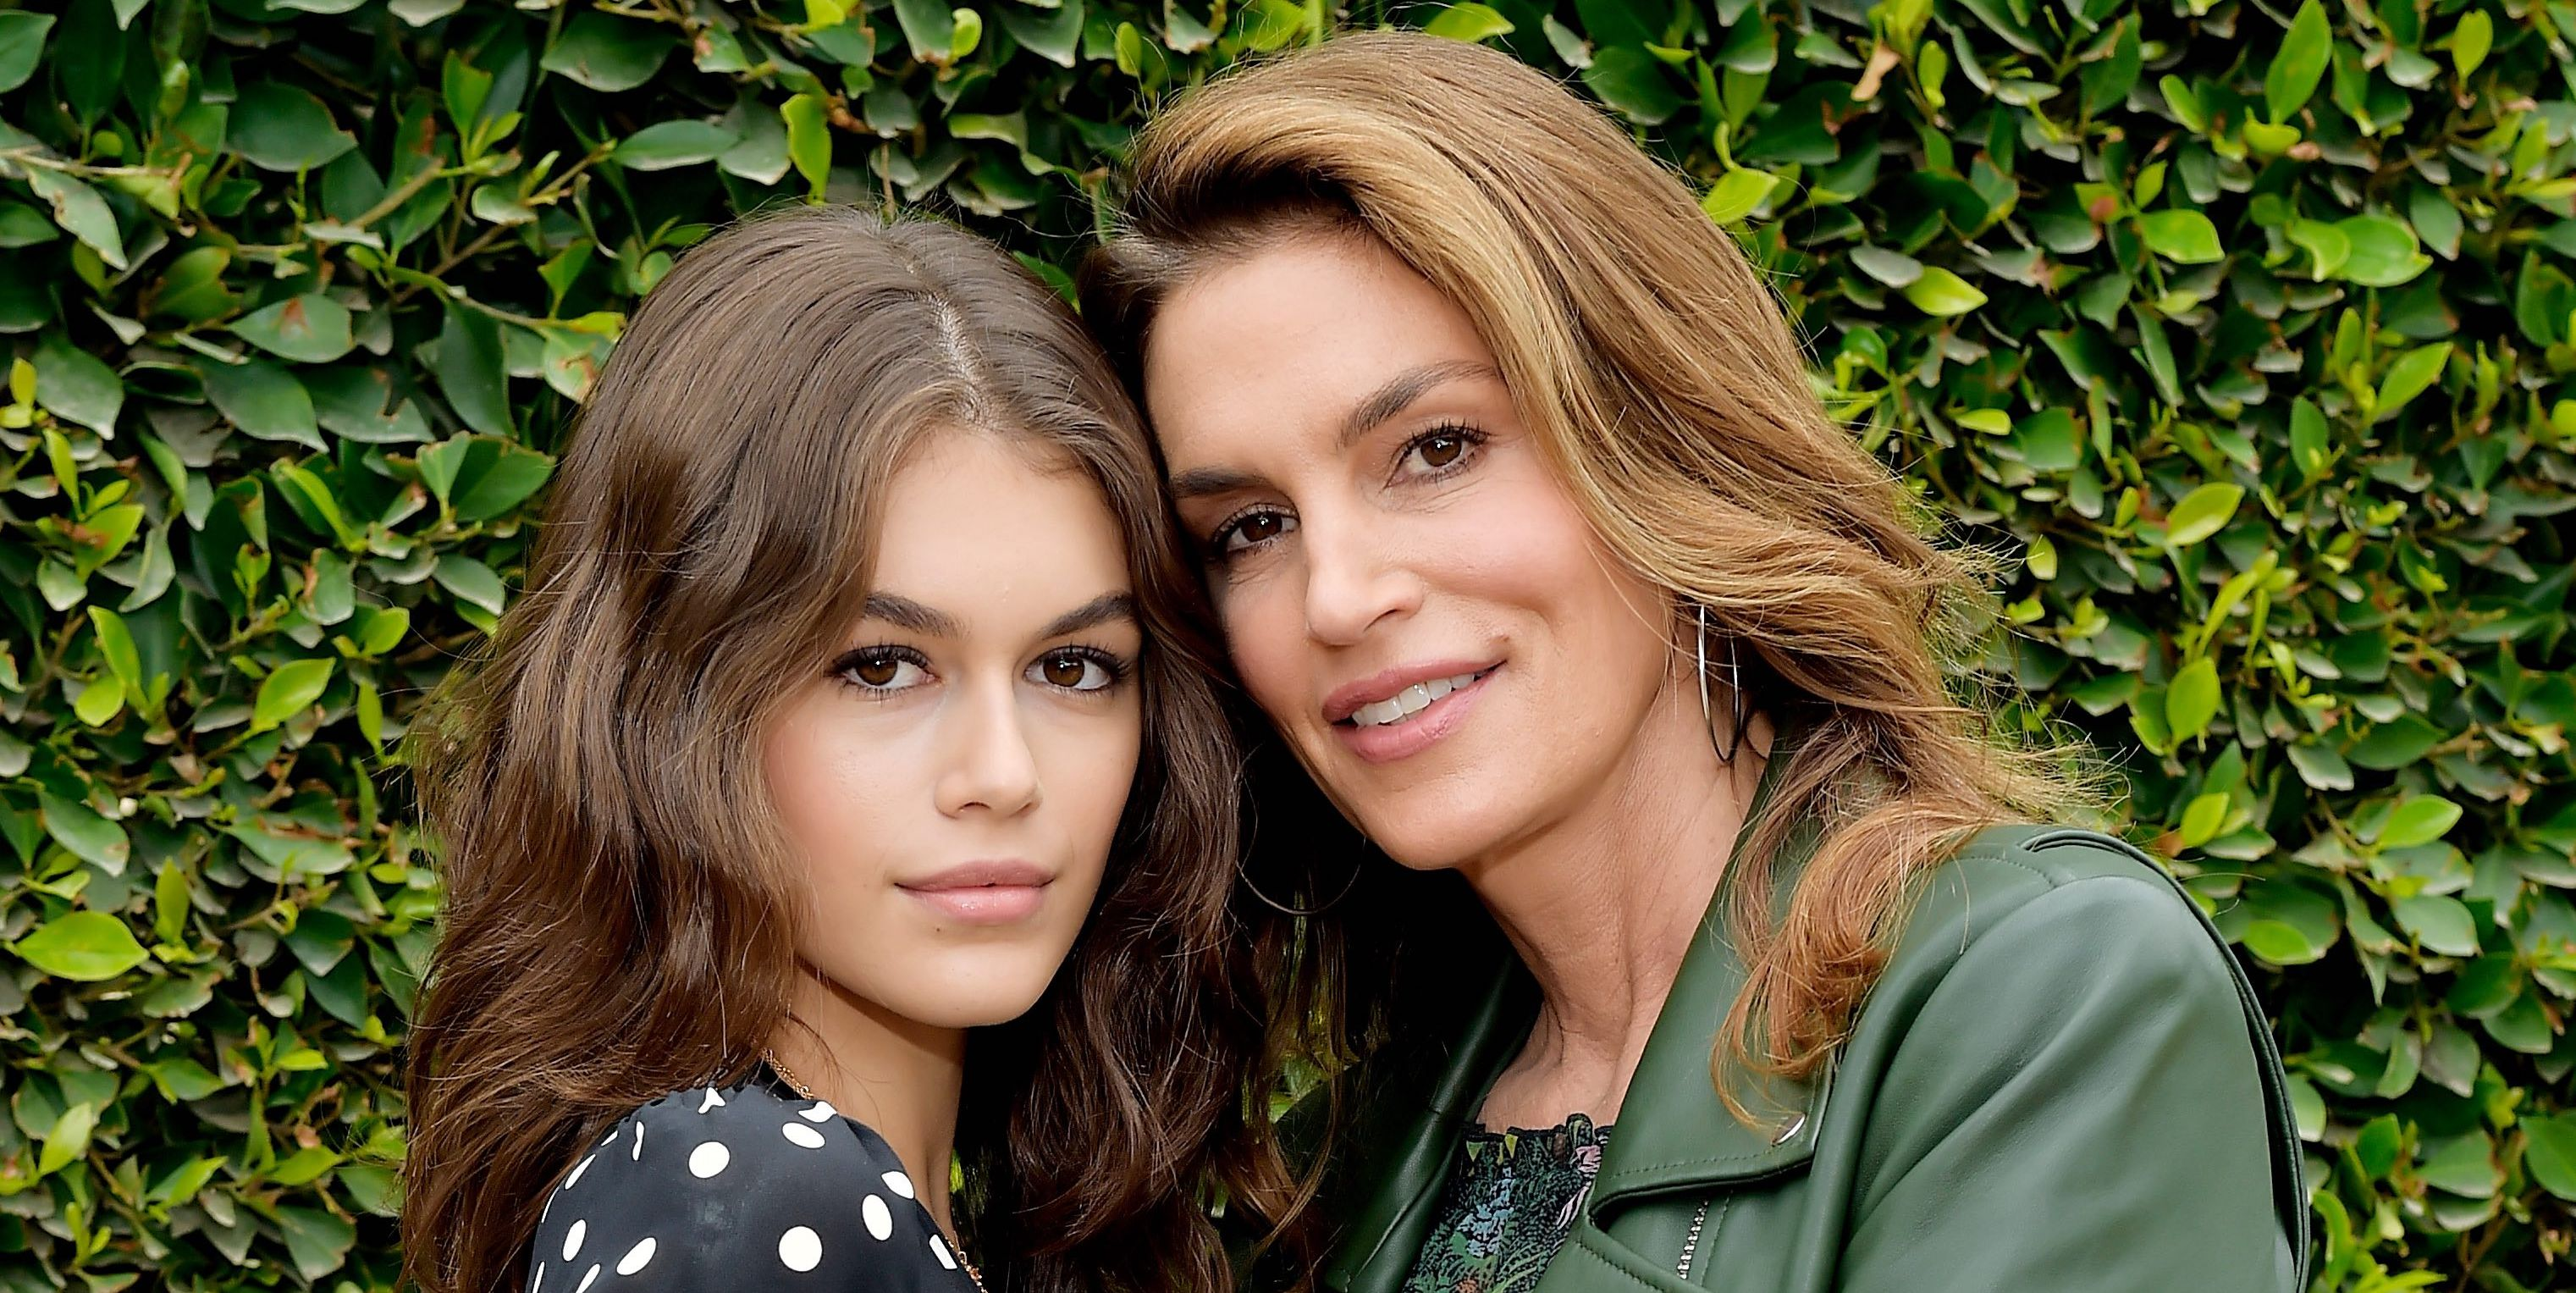 25 Celebrities Whose Kids Look Exactly Like Them